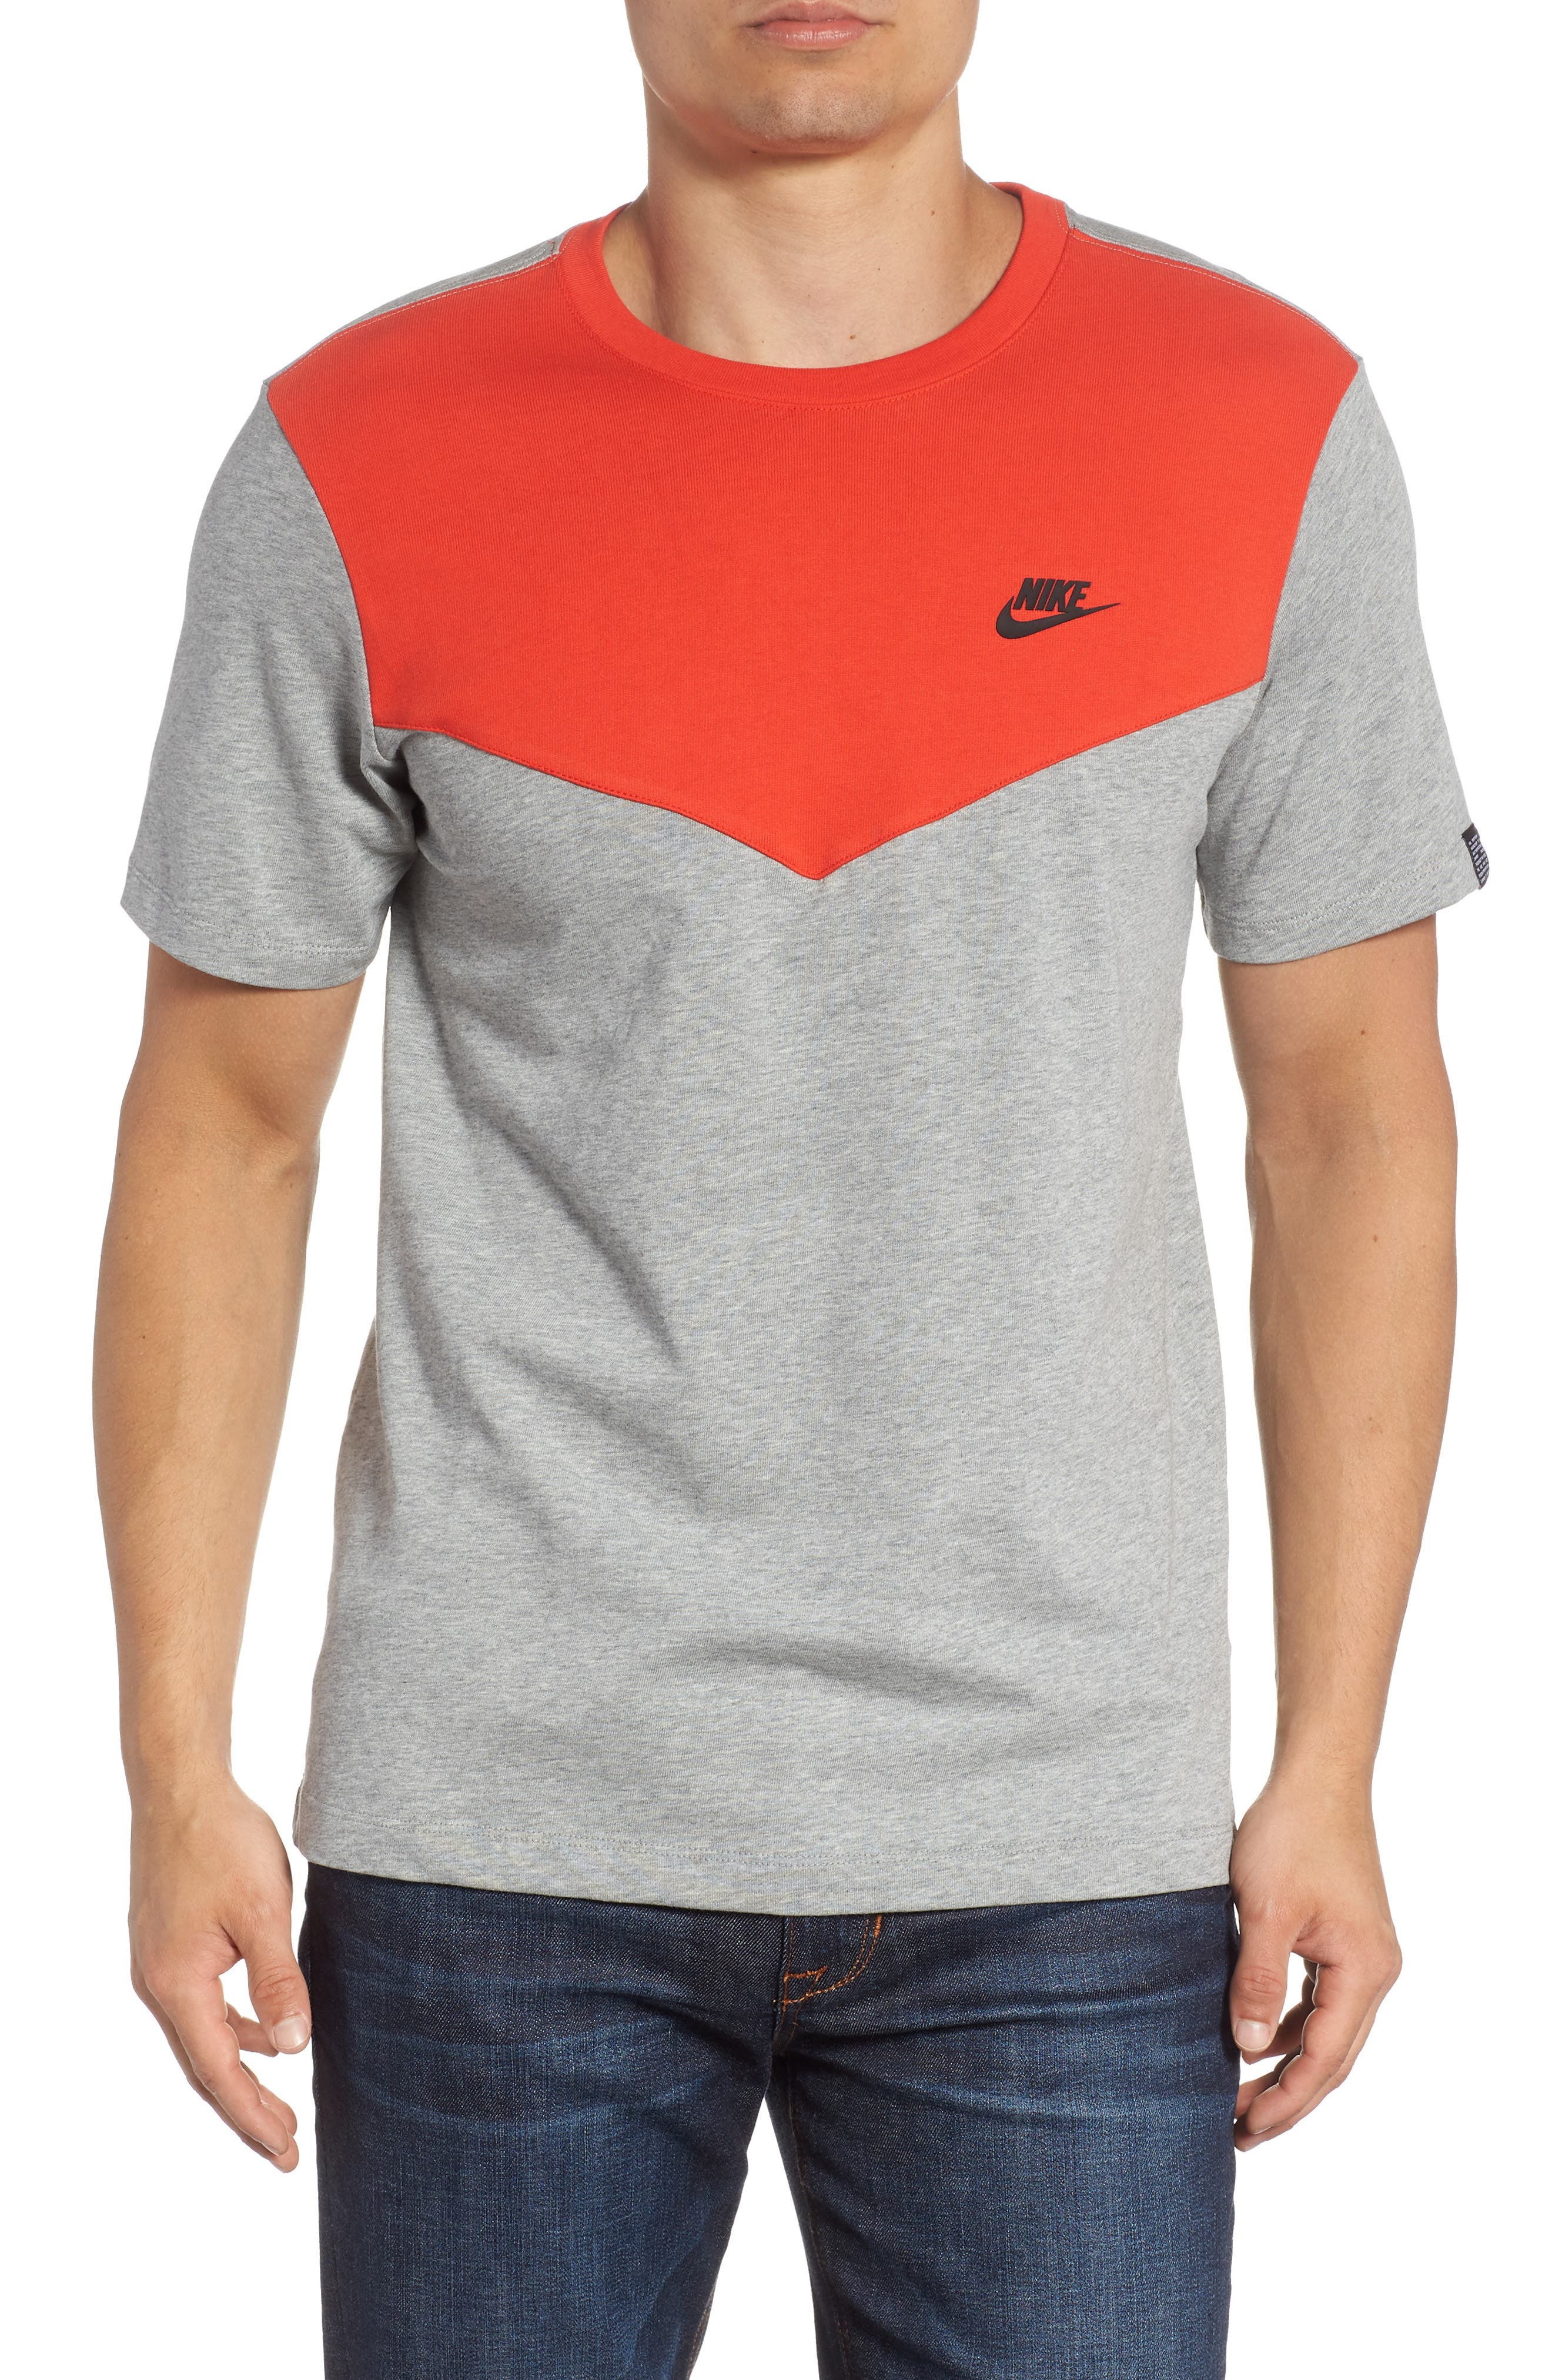 Windrunner Colorblocked T-Shirt,                             Main thumbnail 1, color,                             HABANERO RED/ HEATHER/ BLACK